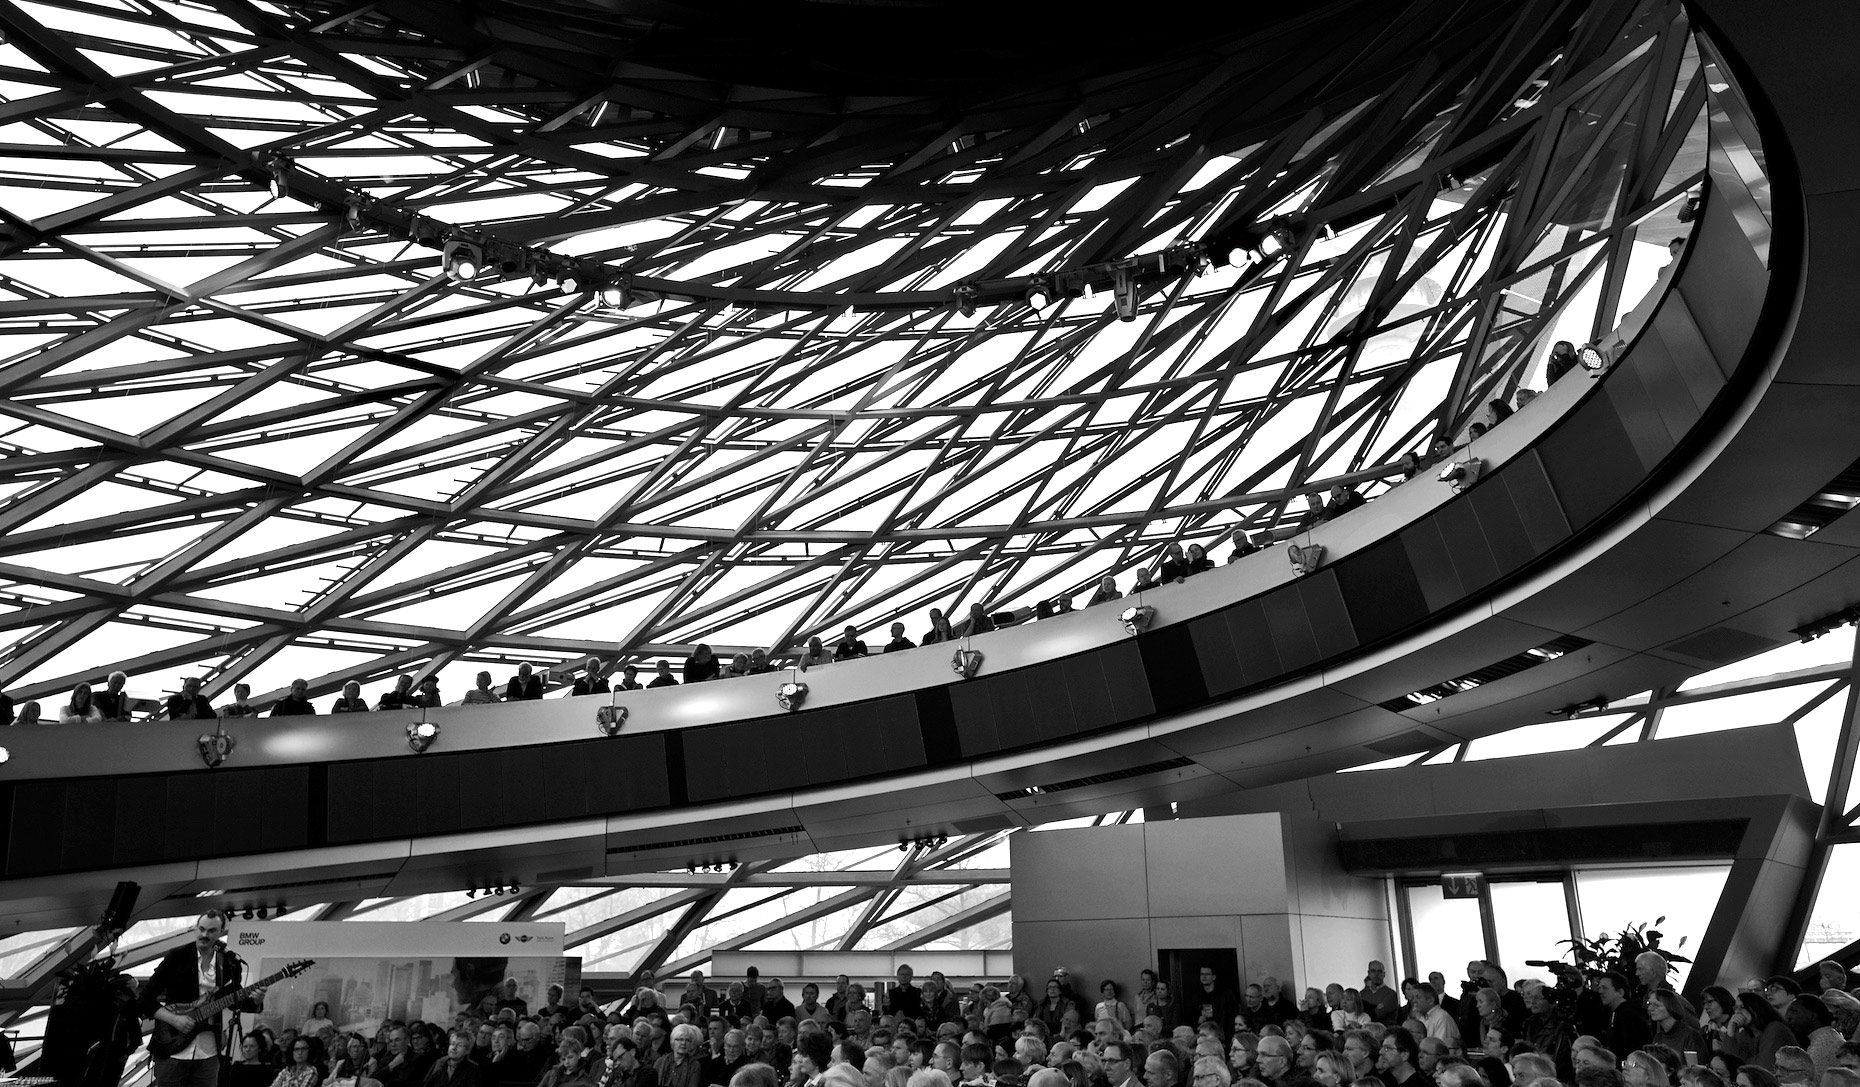 Concert Hall, BMW Welt, Munich